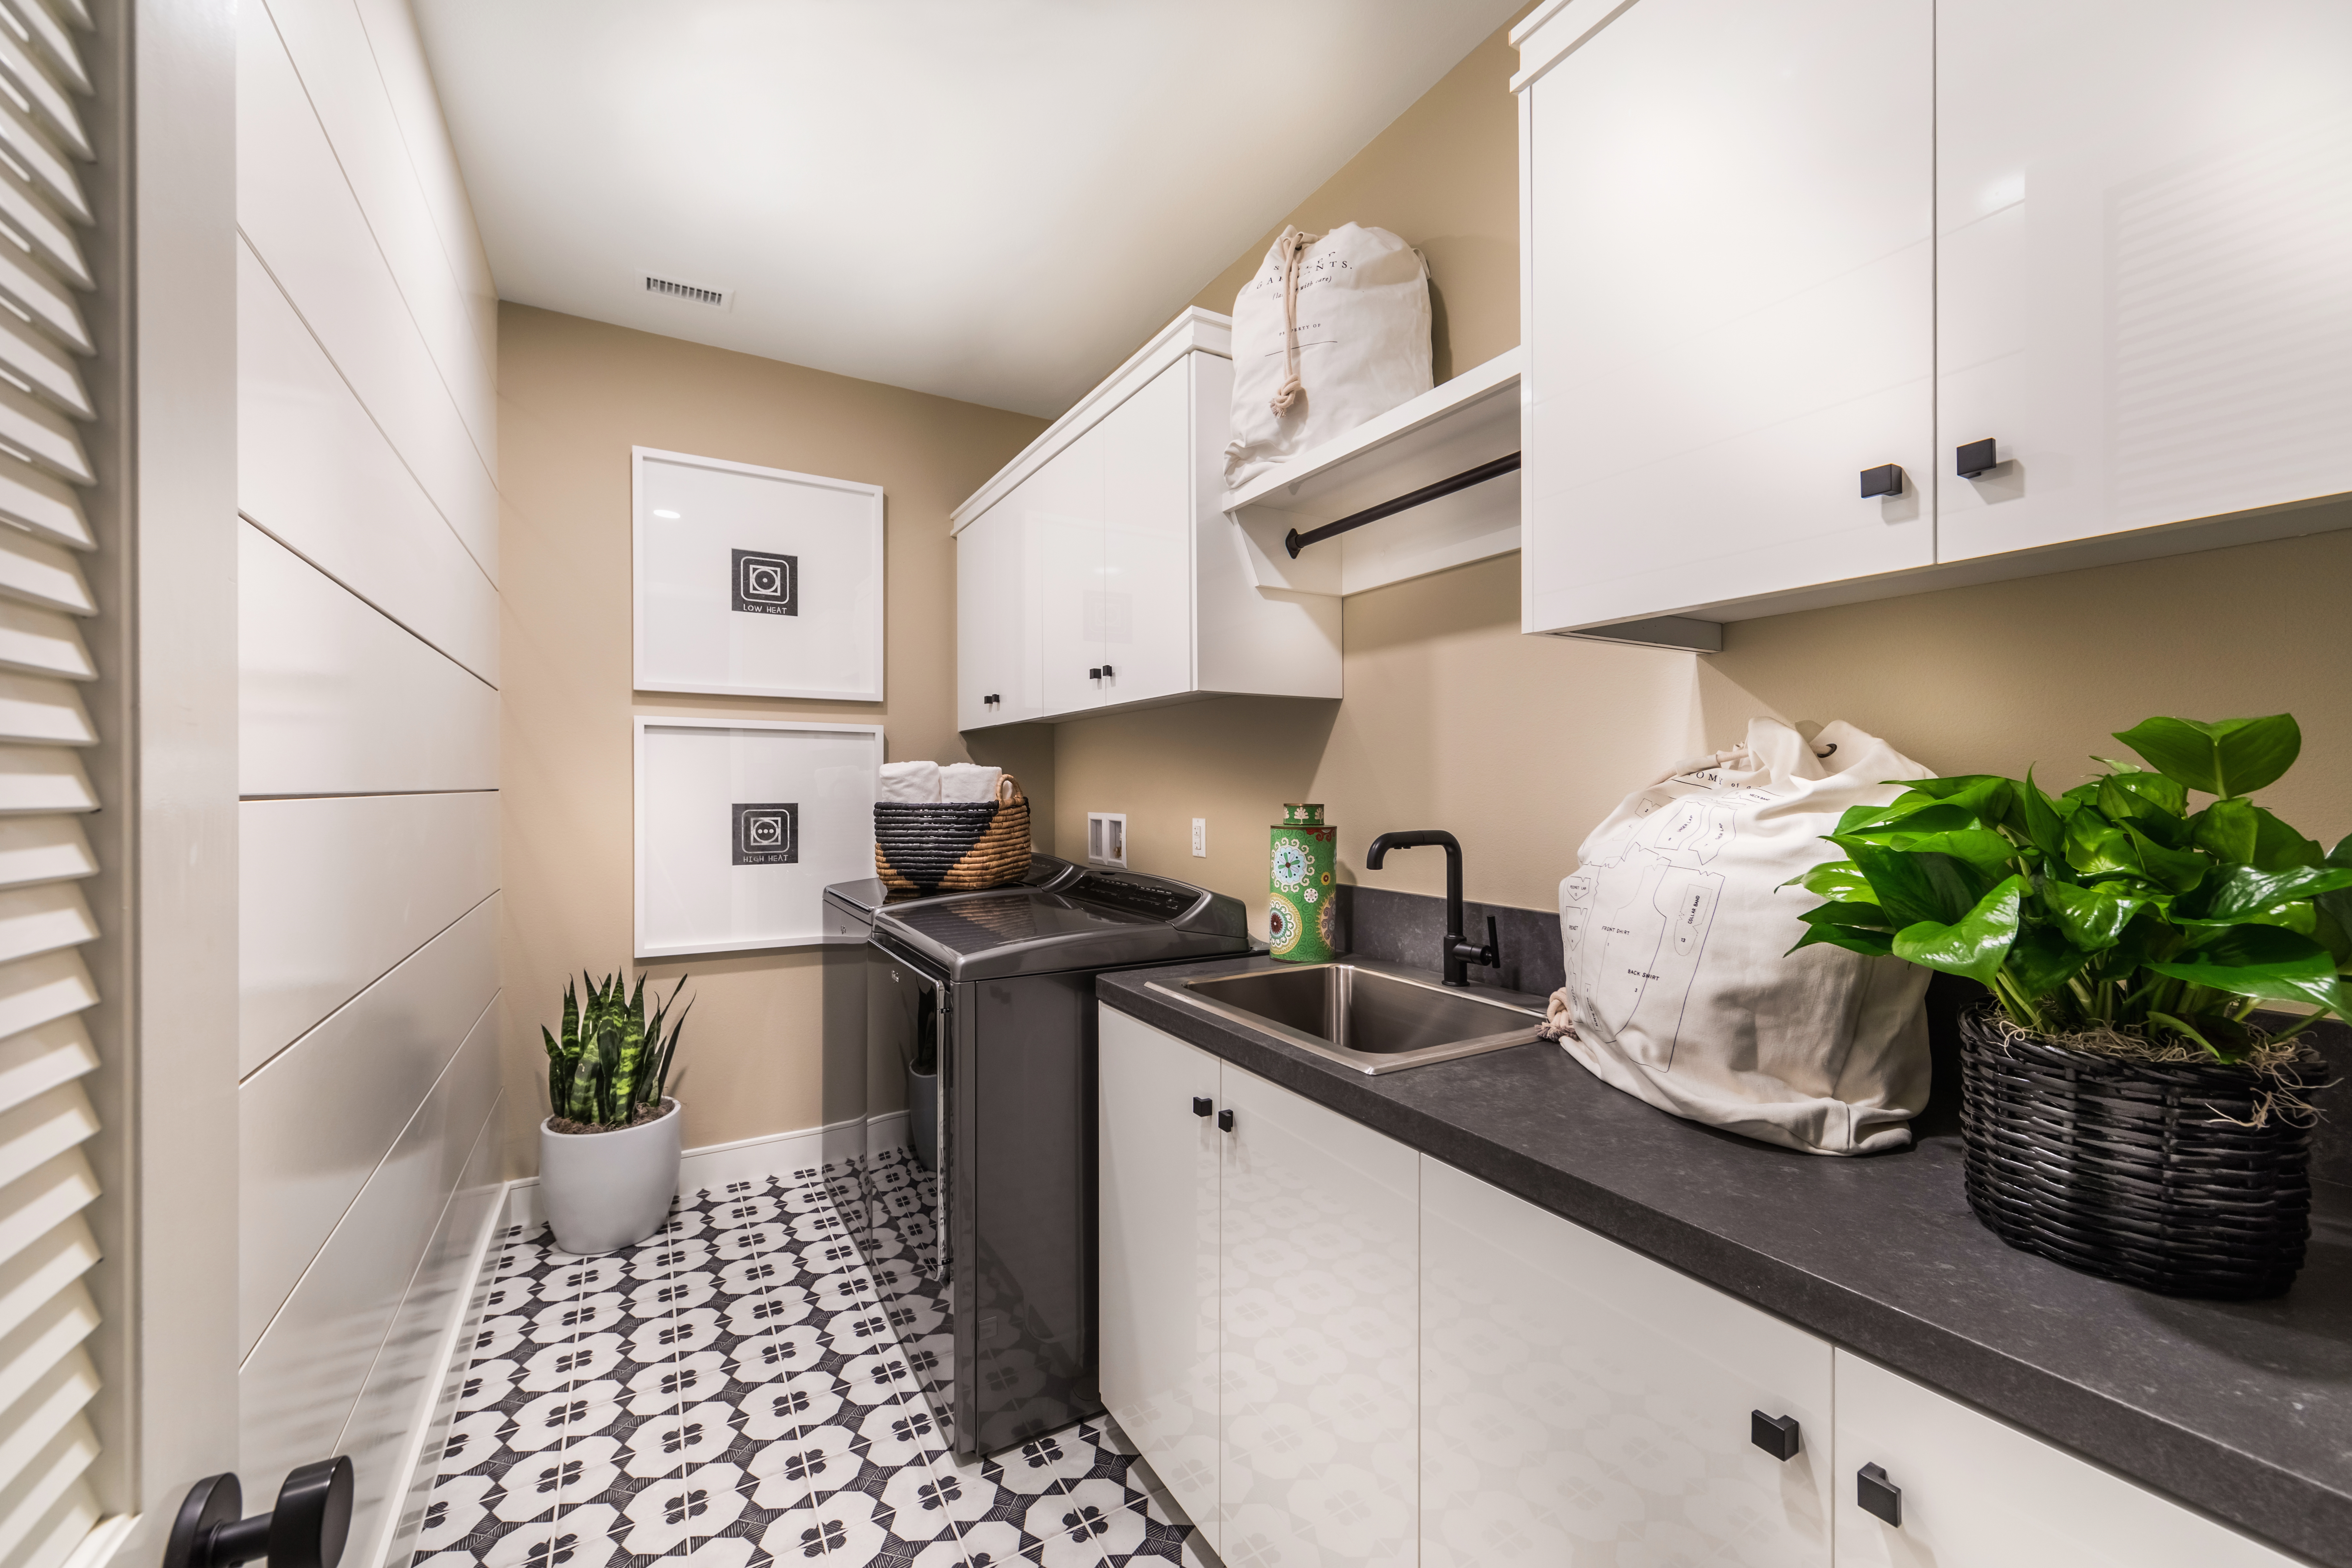 Laundry Room at Barcelona Residence 3 in Irvine